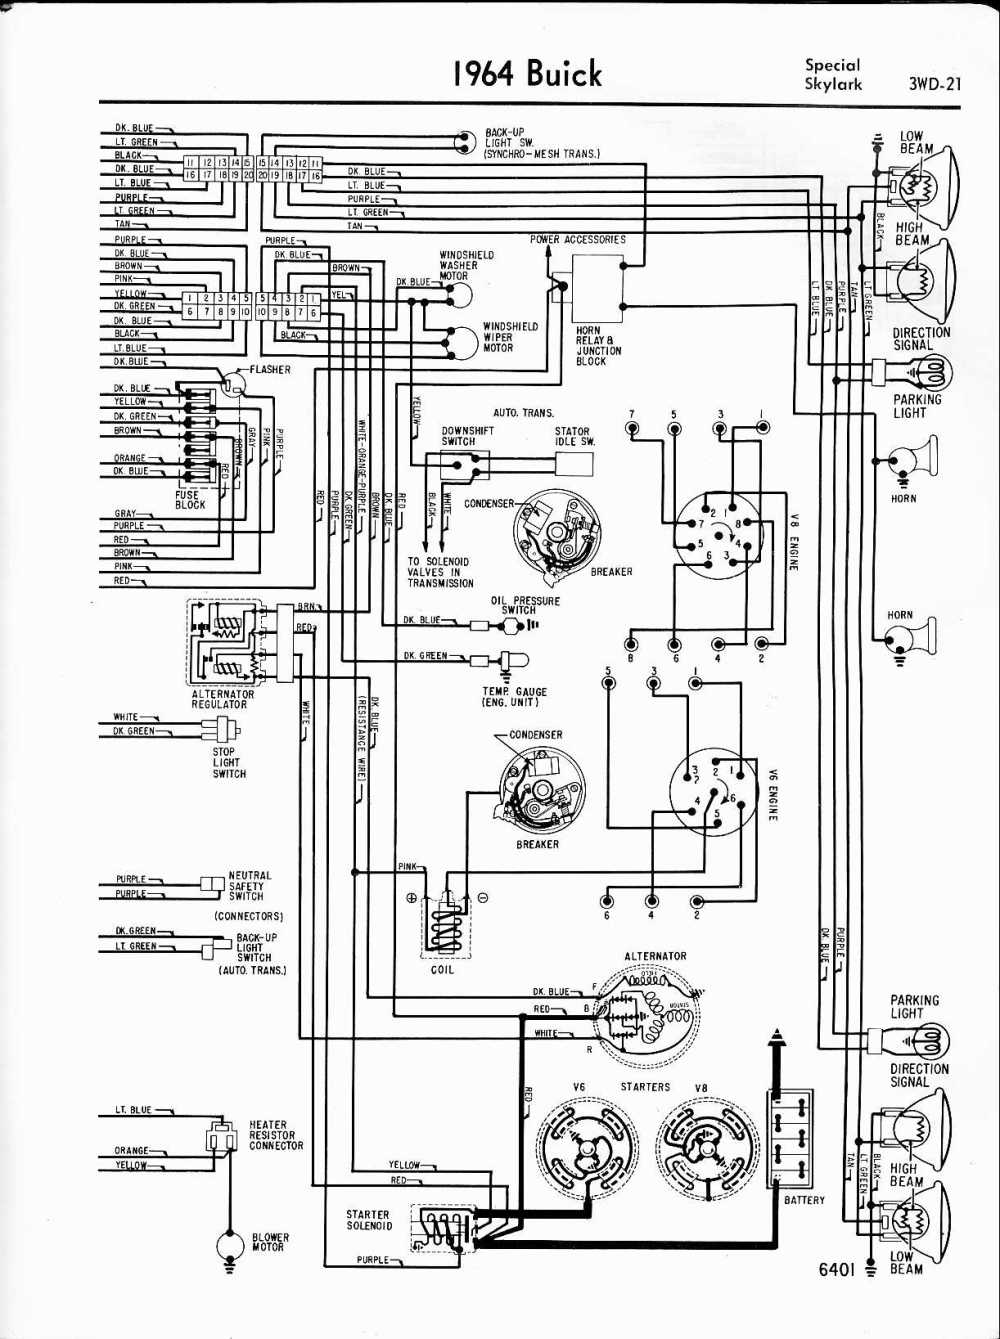 medium resolution of 1966 buick riviera wiring diagram simple wiring diagram rh david huggett co uk 1996 buick park